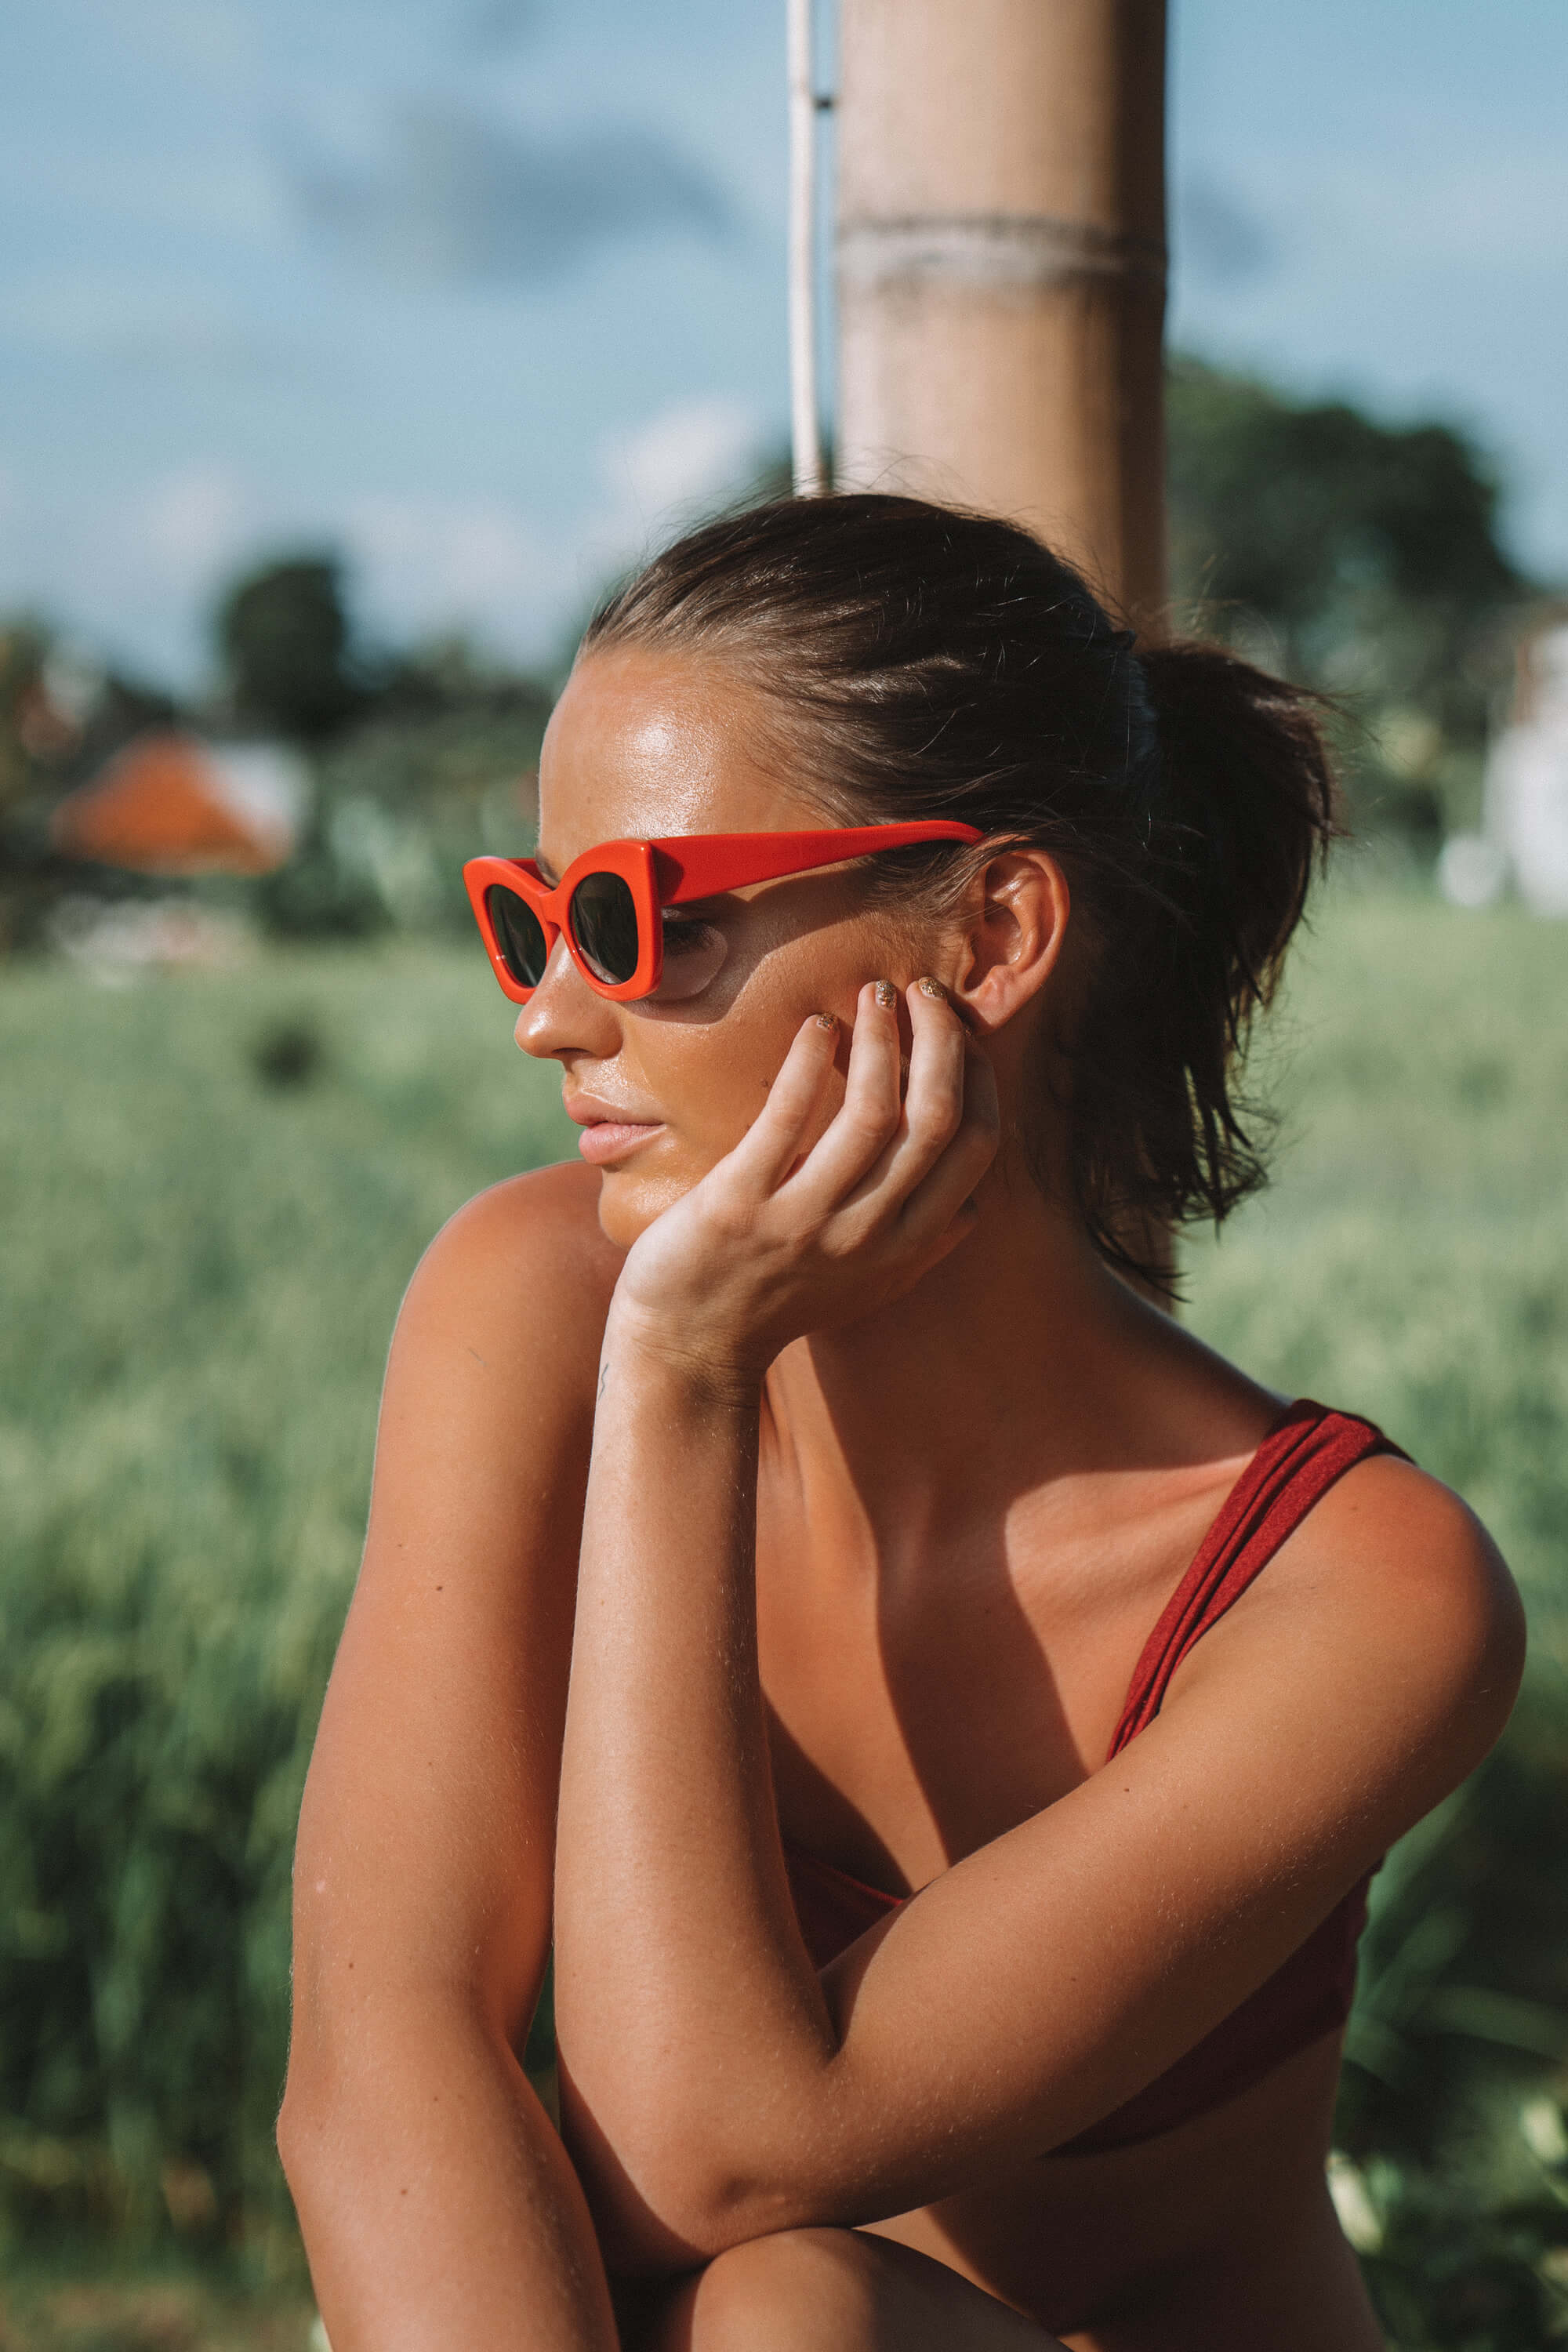 Soda Shades of Summer Australias best sunglasses eyewear online brand – Bali Model shoot_-25